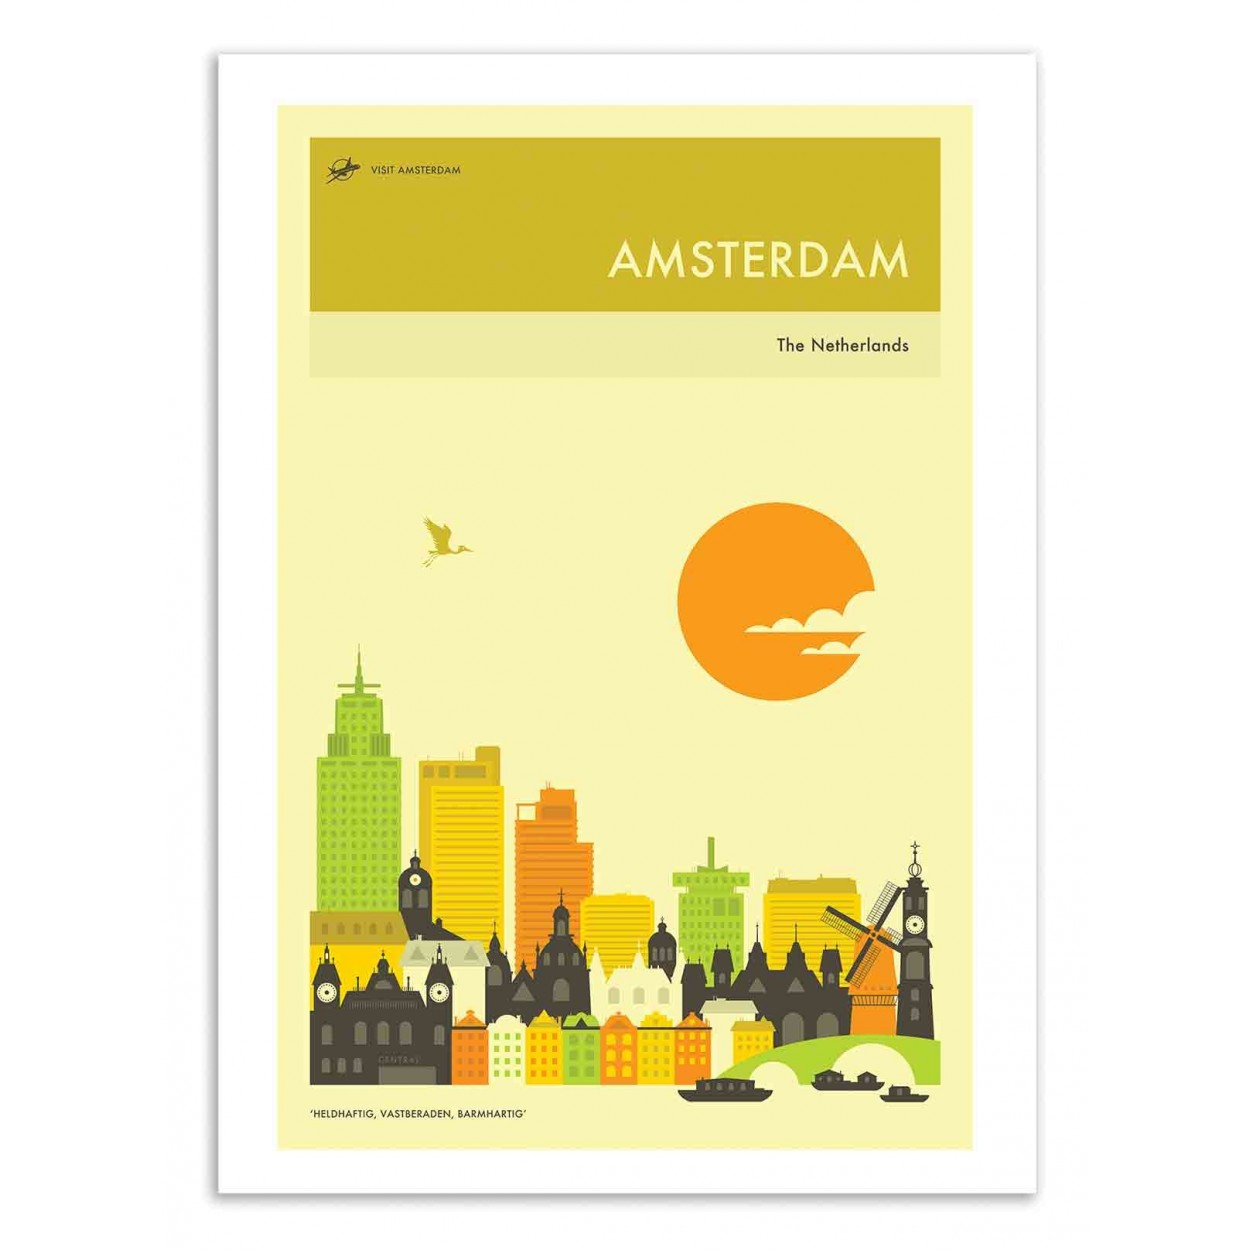 """amsterdam tourism marketing condition tourism essay Tourism, terrorism, and tomorrow  """"tourism is the only economic sector where developing countries consistently run a trade surplus,"""" says mastny."""